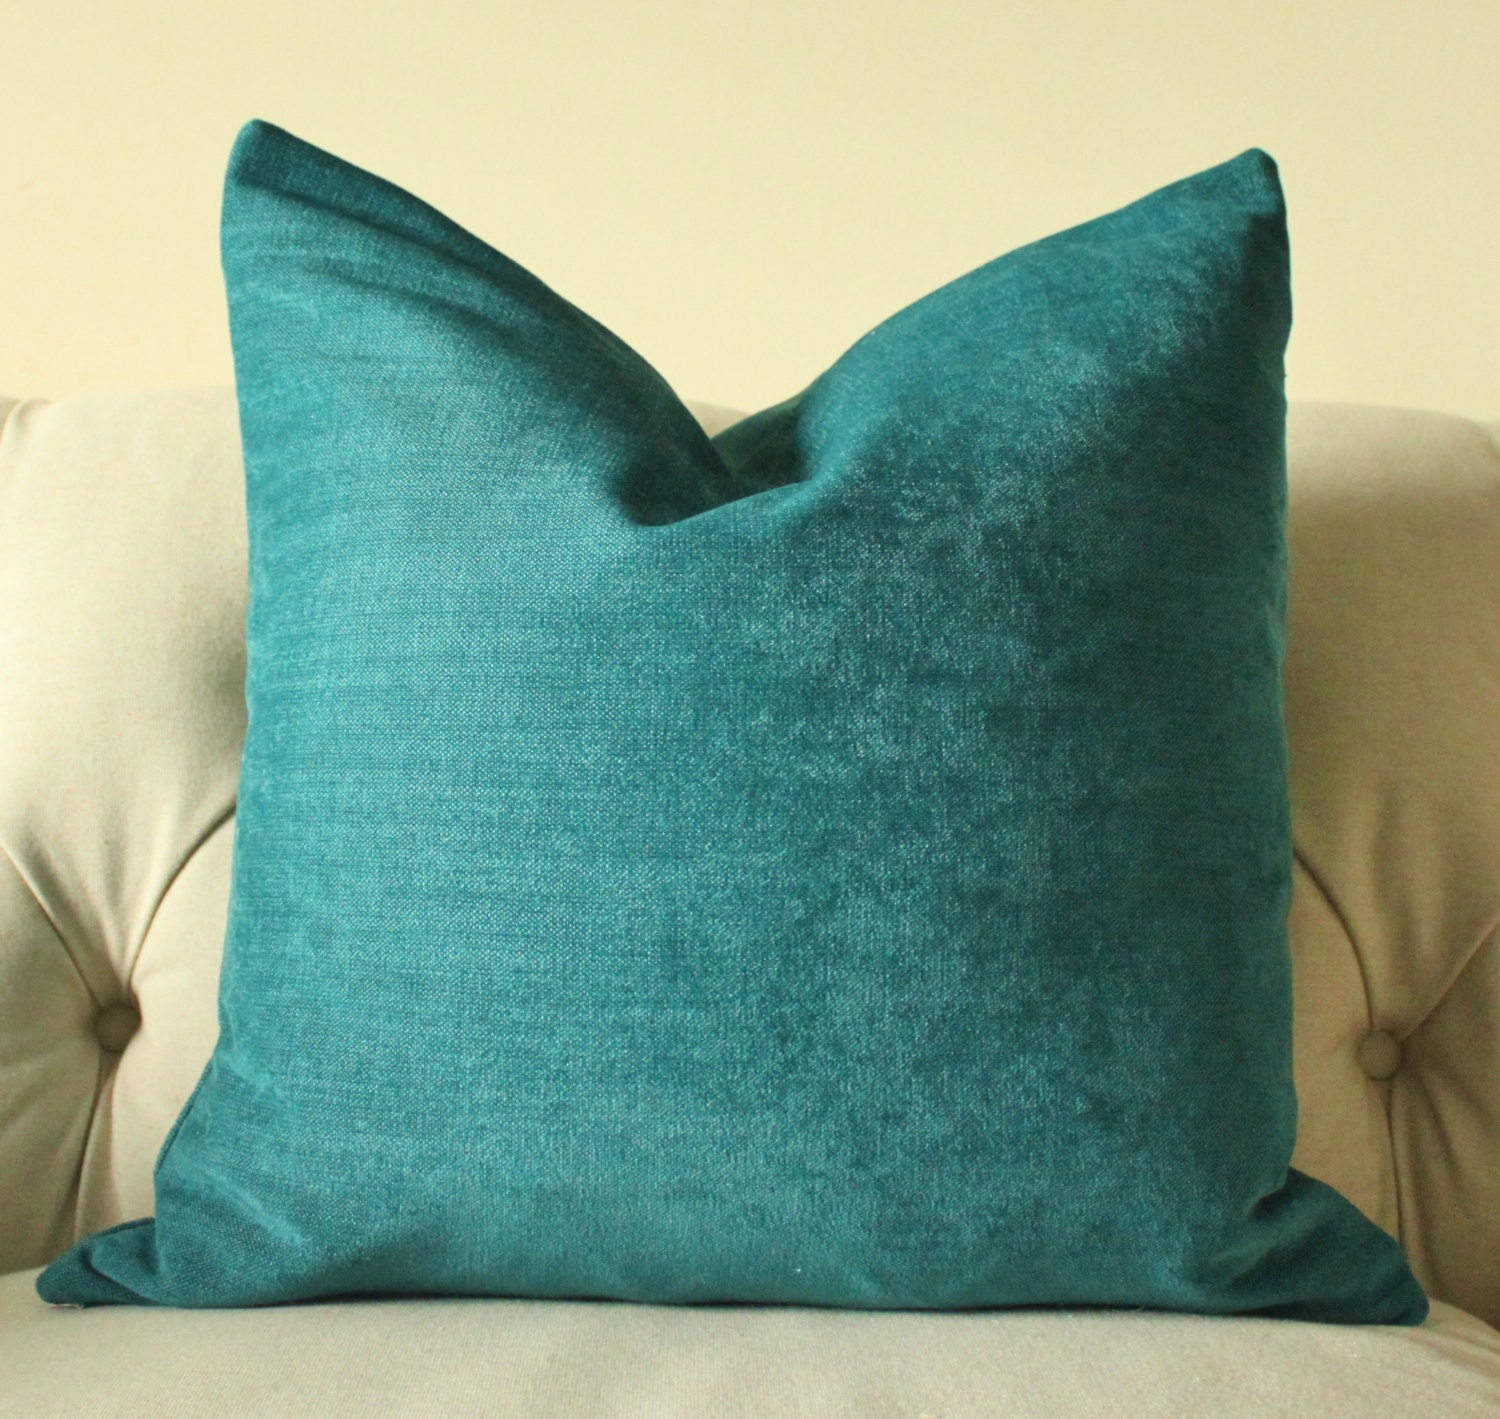 scrumptious knit throw turquoise ink decorative pillow reviews amp design cover size full ivy pillows bree of